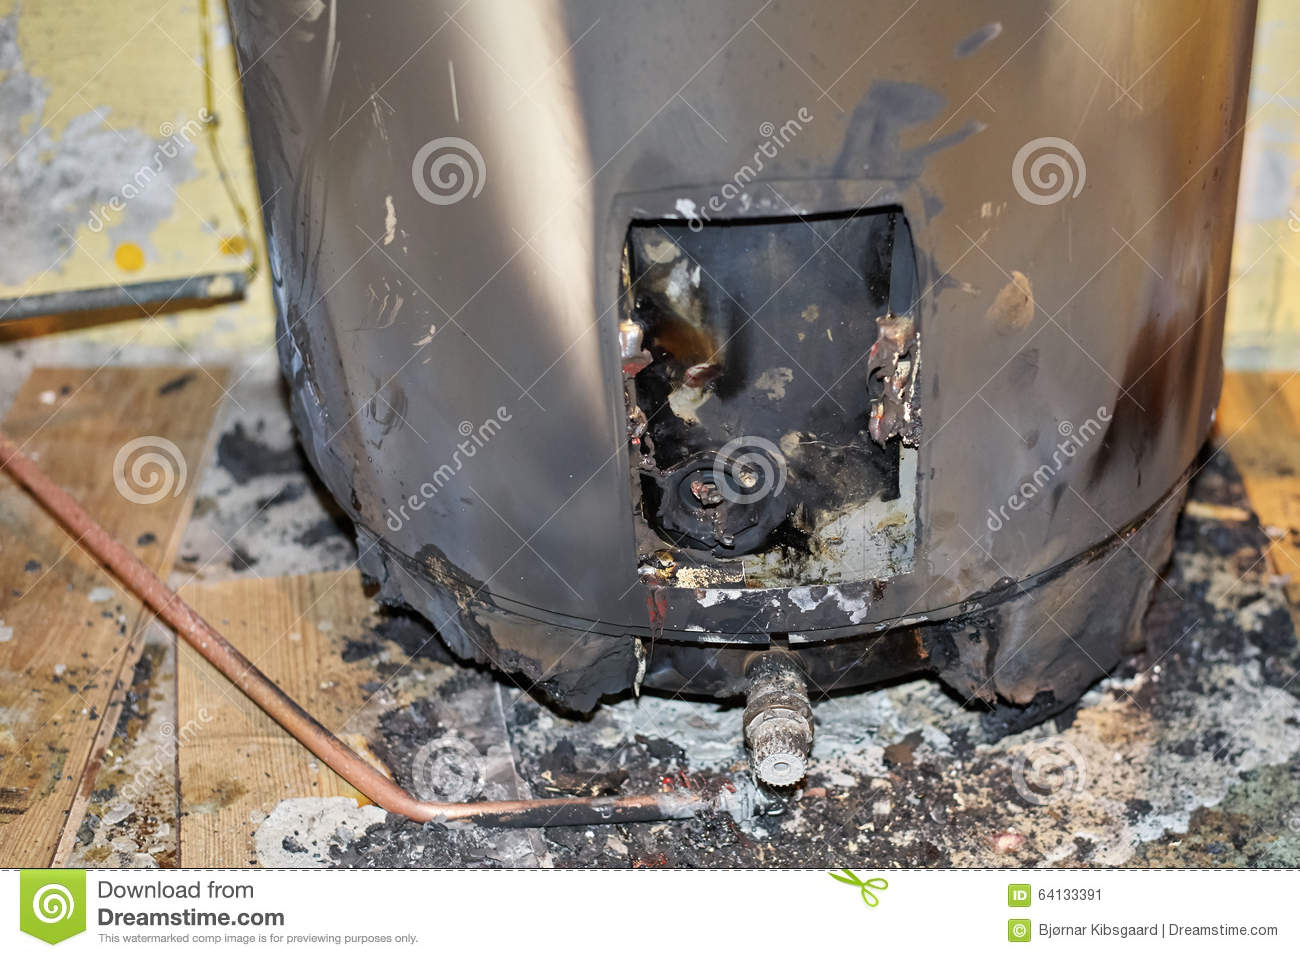 burned water heater stock image image of electric pipe. Black Bedroom Furniture Sets. Home Design Ideas